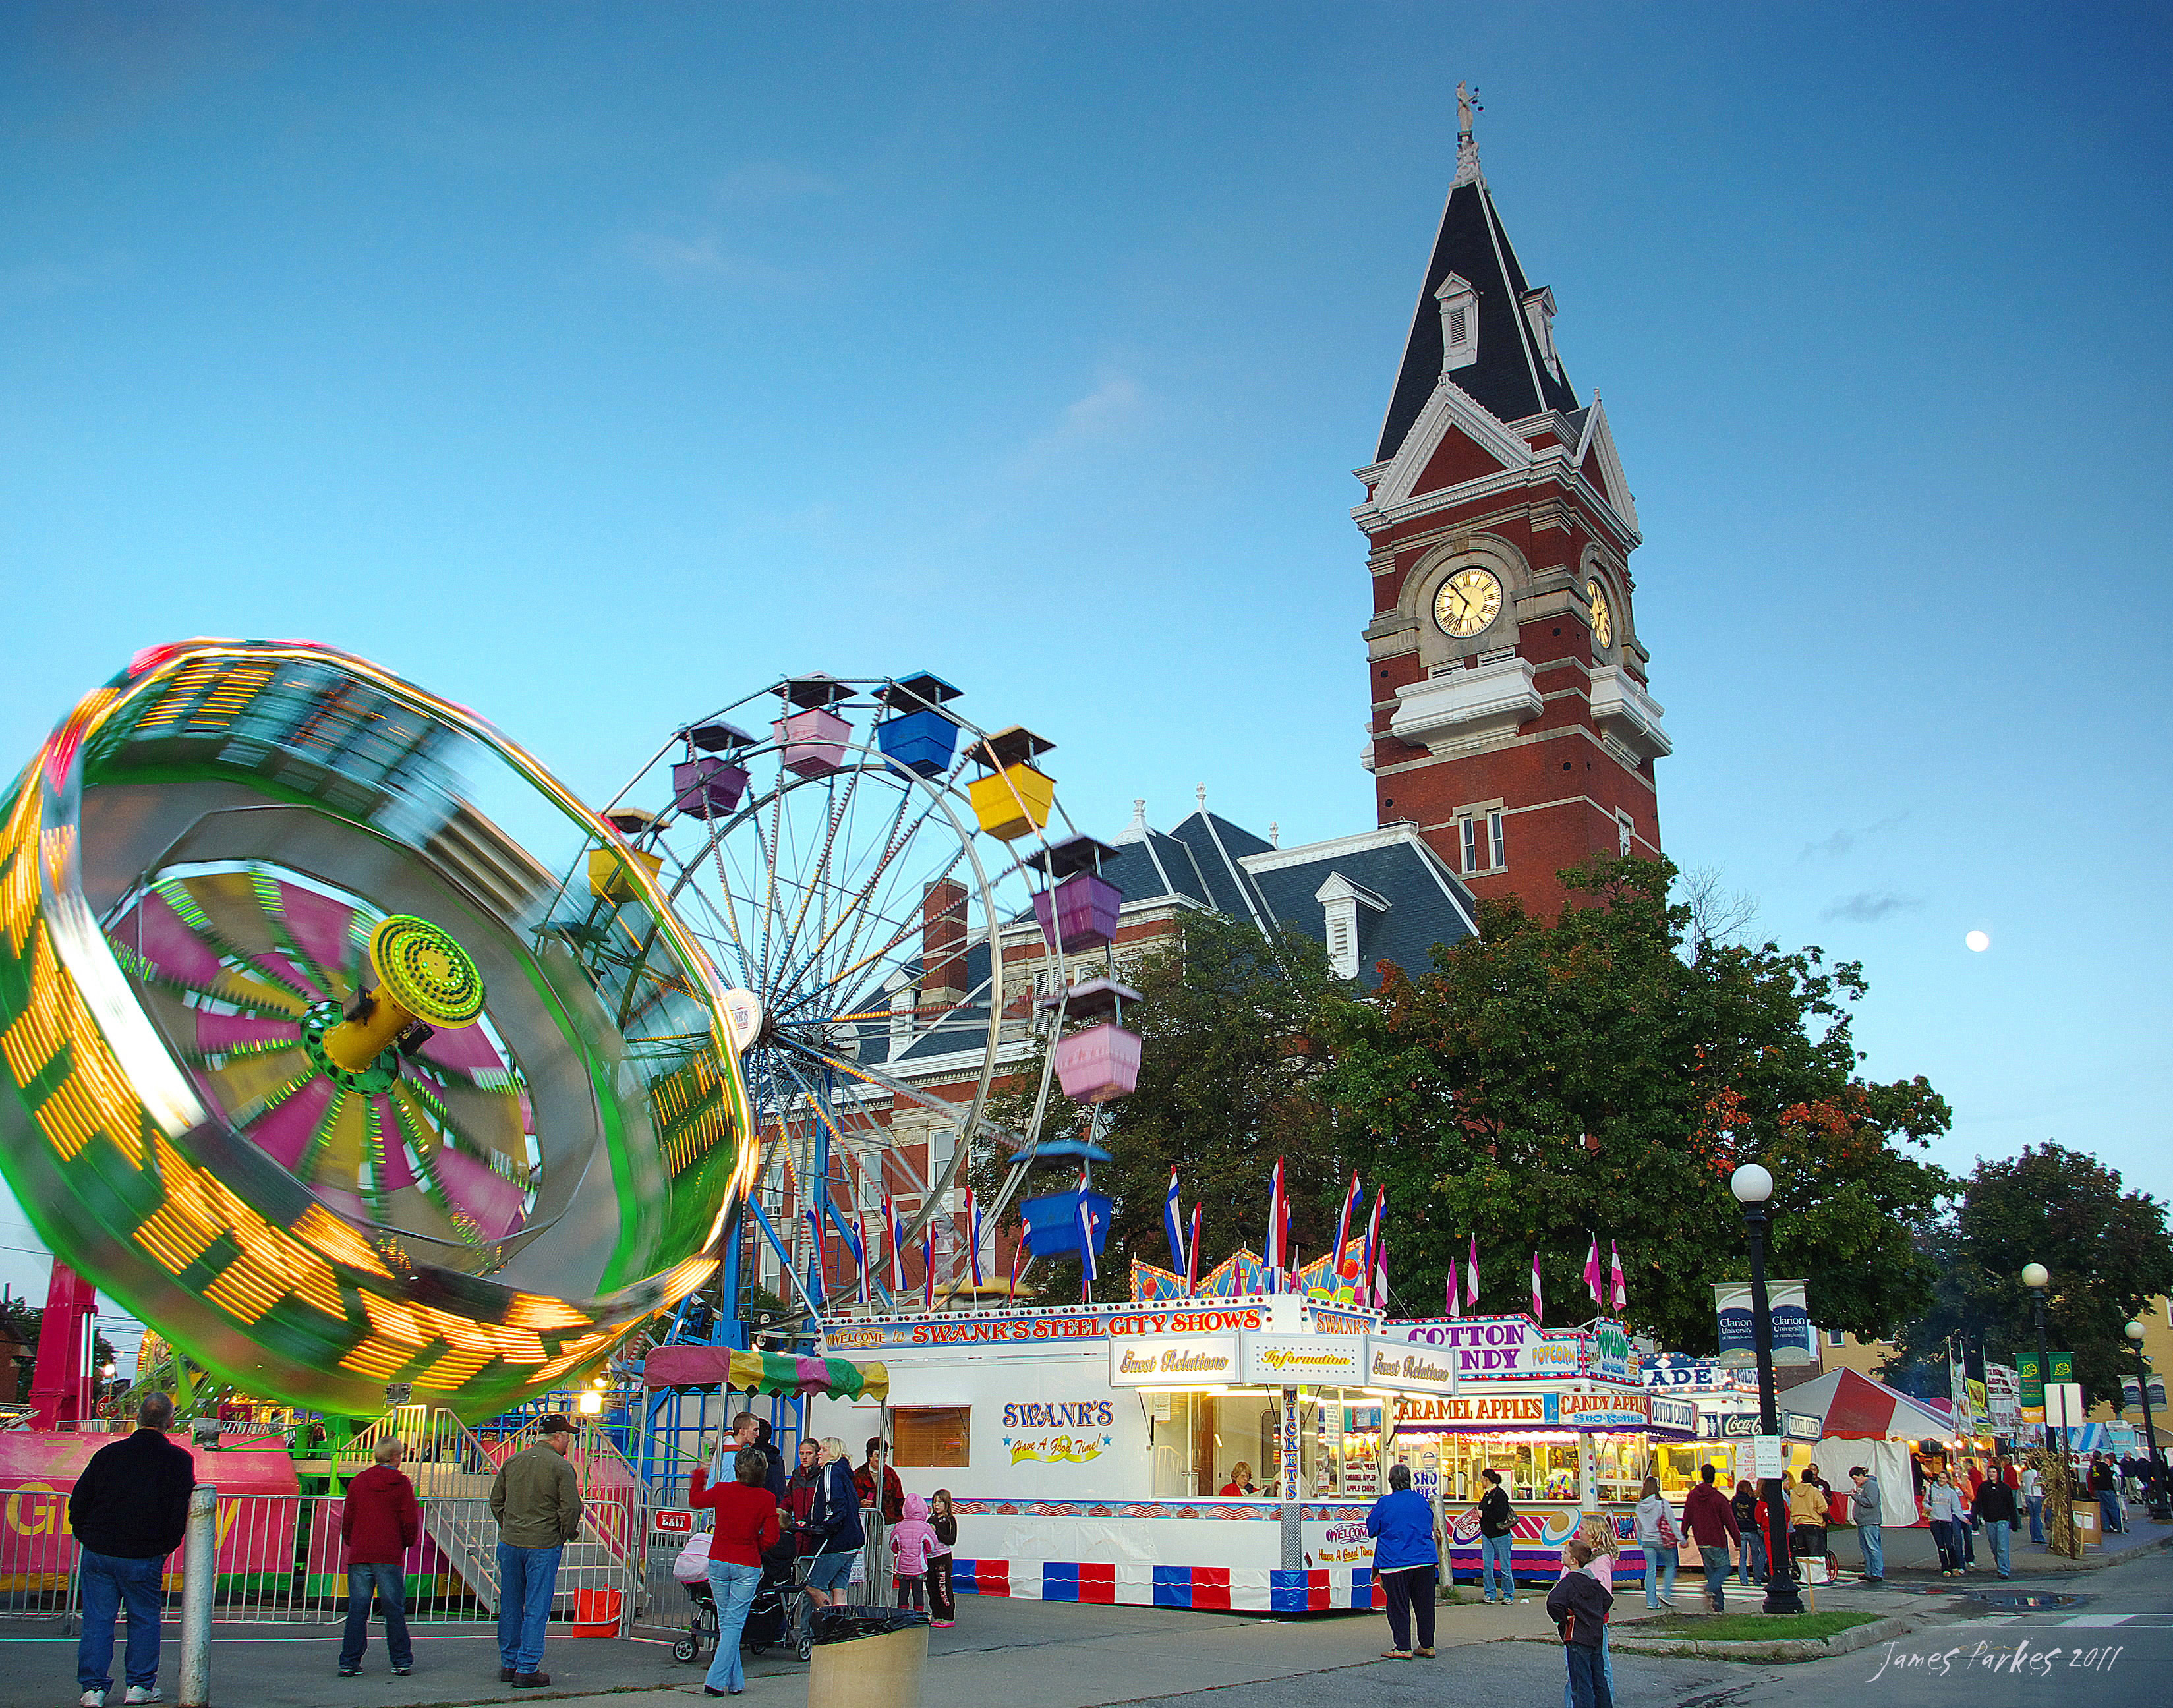 Clarion County Courthouse and Festival carnival at dusk